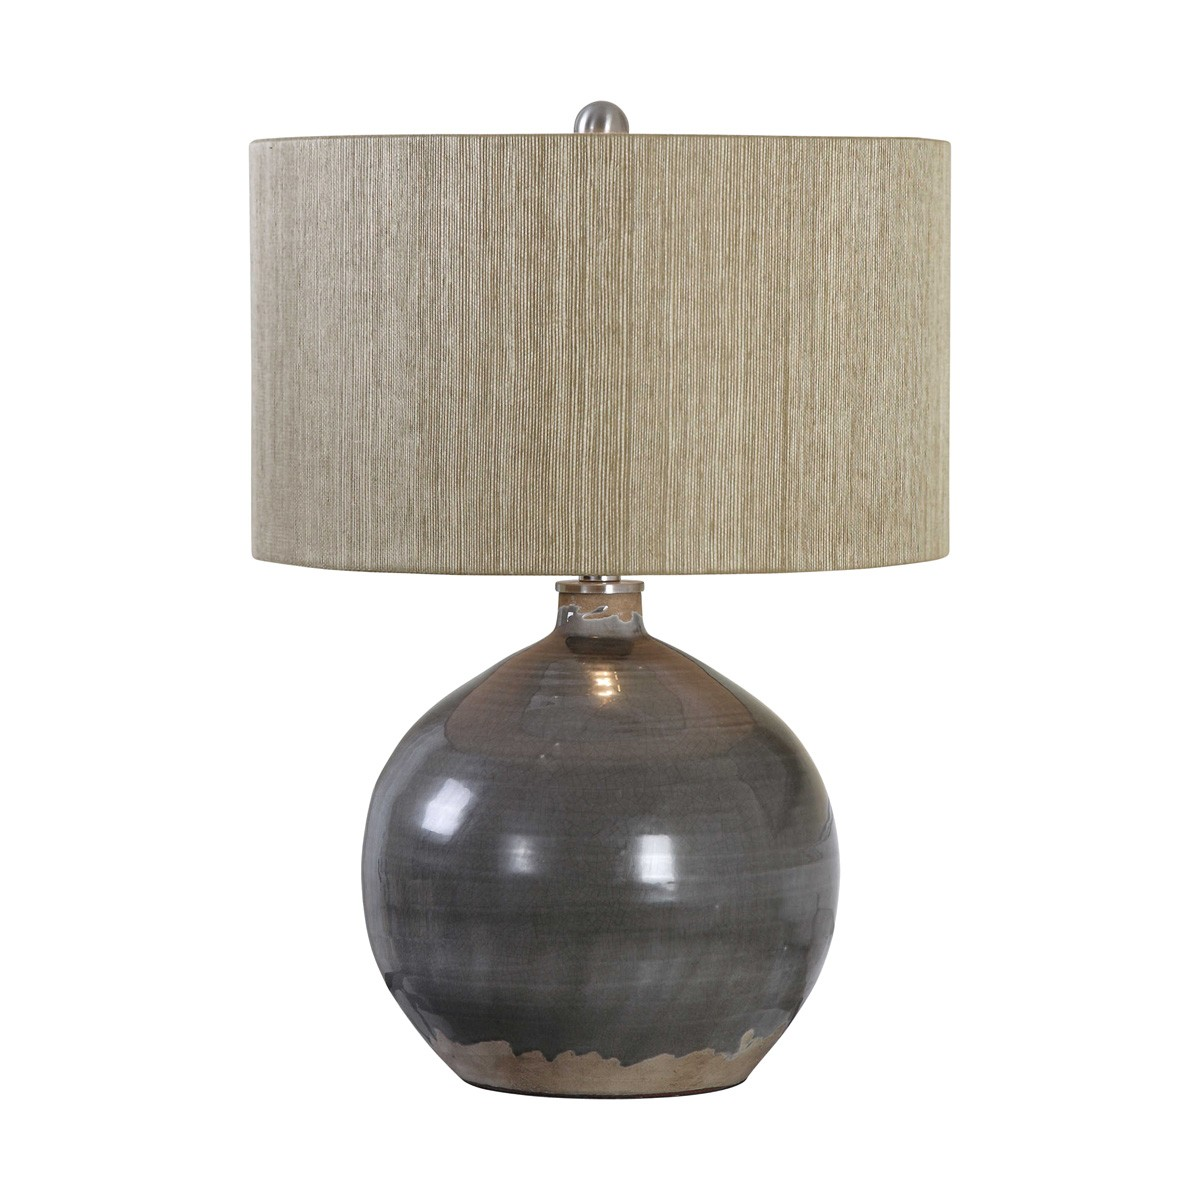 Vardenis Ceramic Base Table Lamp